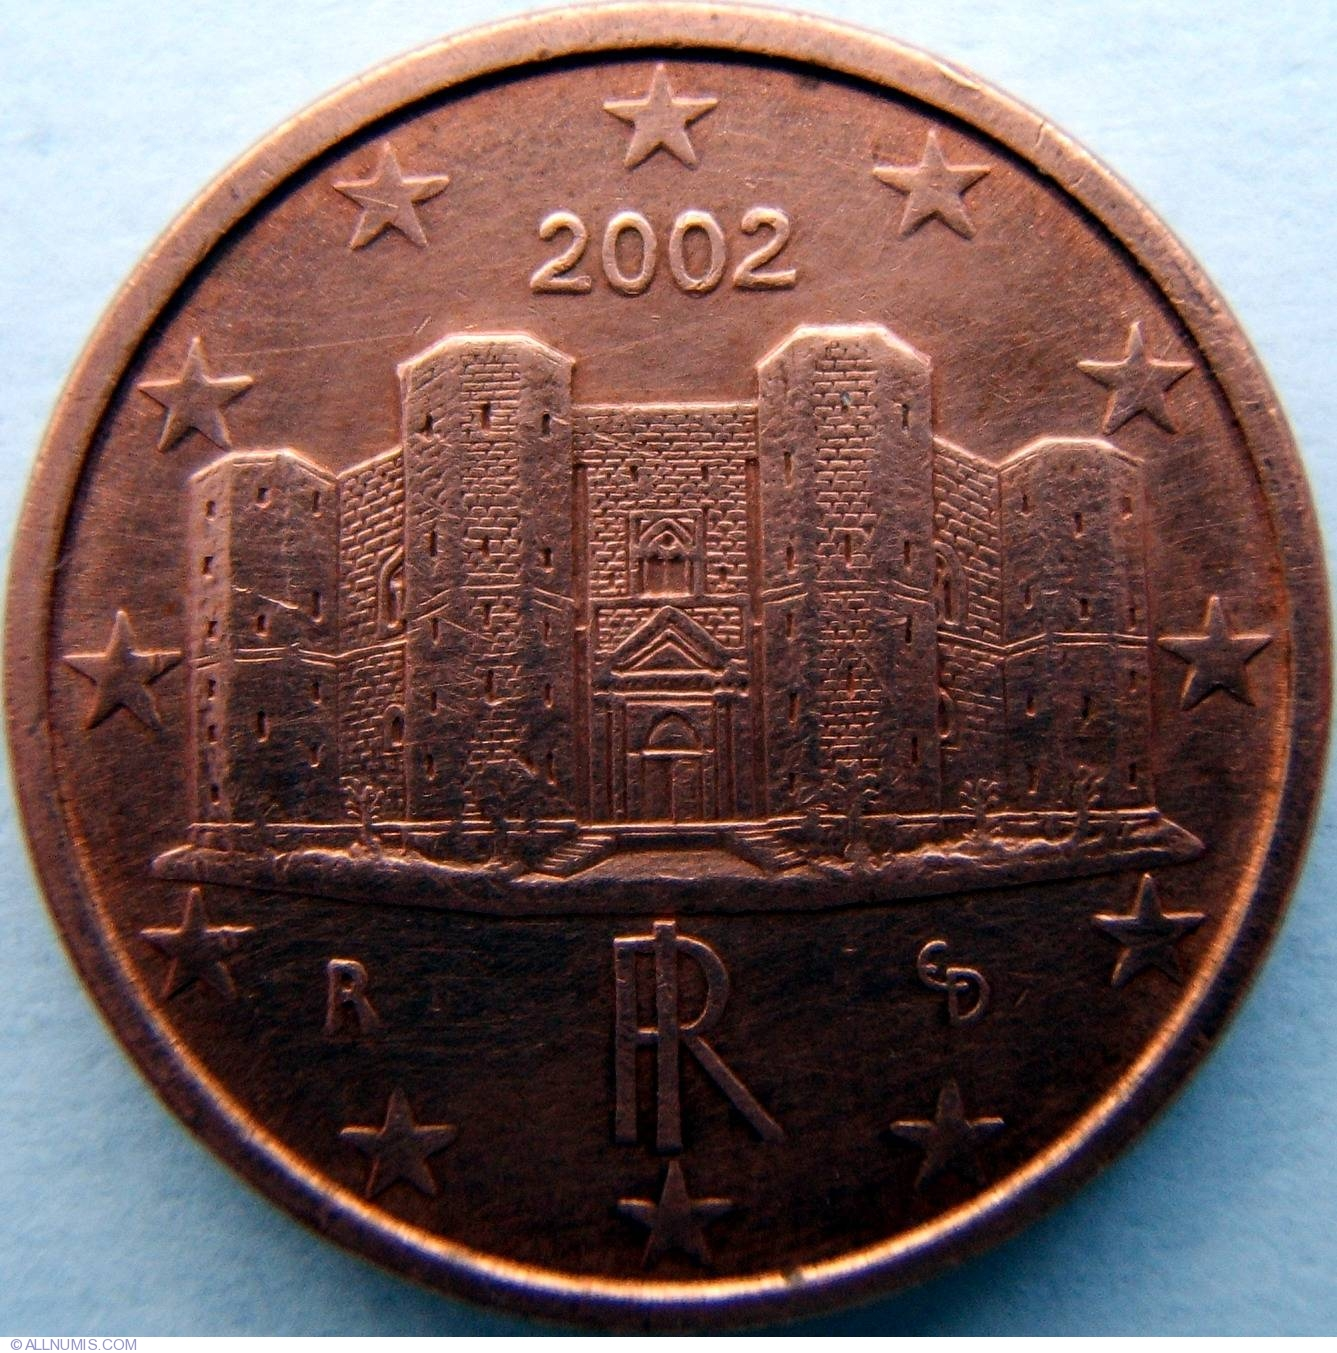 1 euro cent 2002 euro 2002 1 euro cent italy. Black Bedroom Furniture Sets. Home Design Ideas